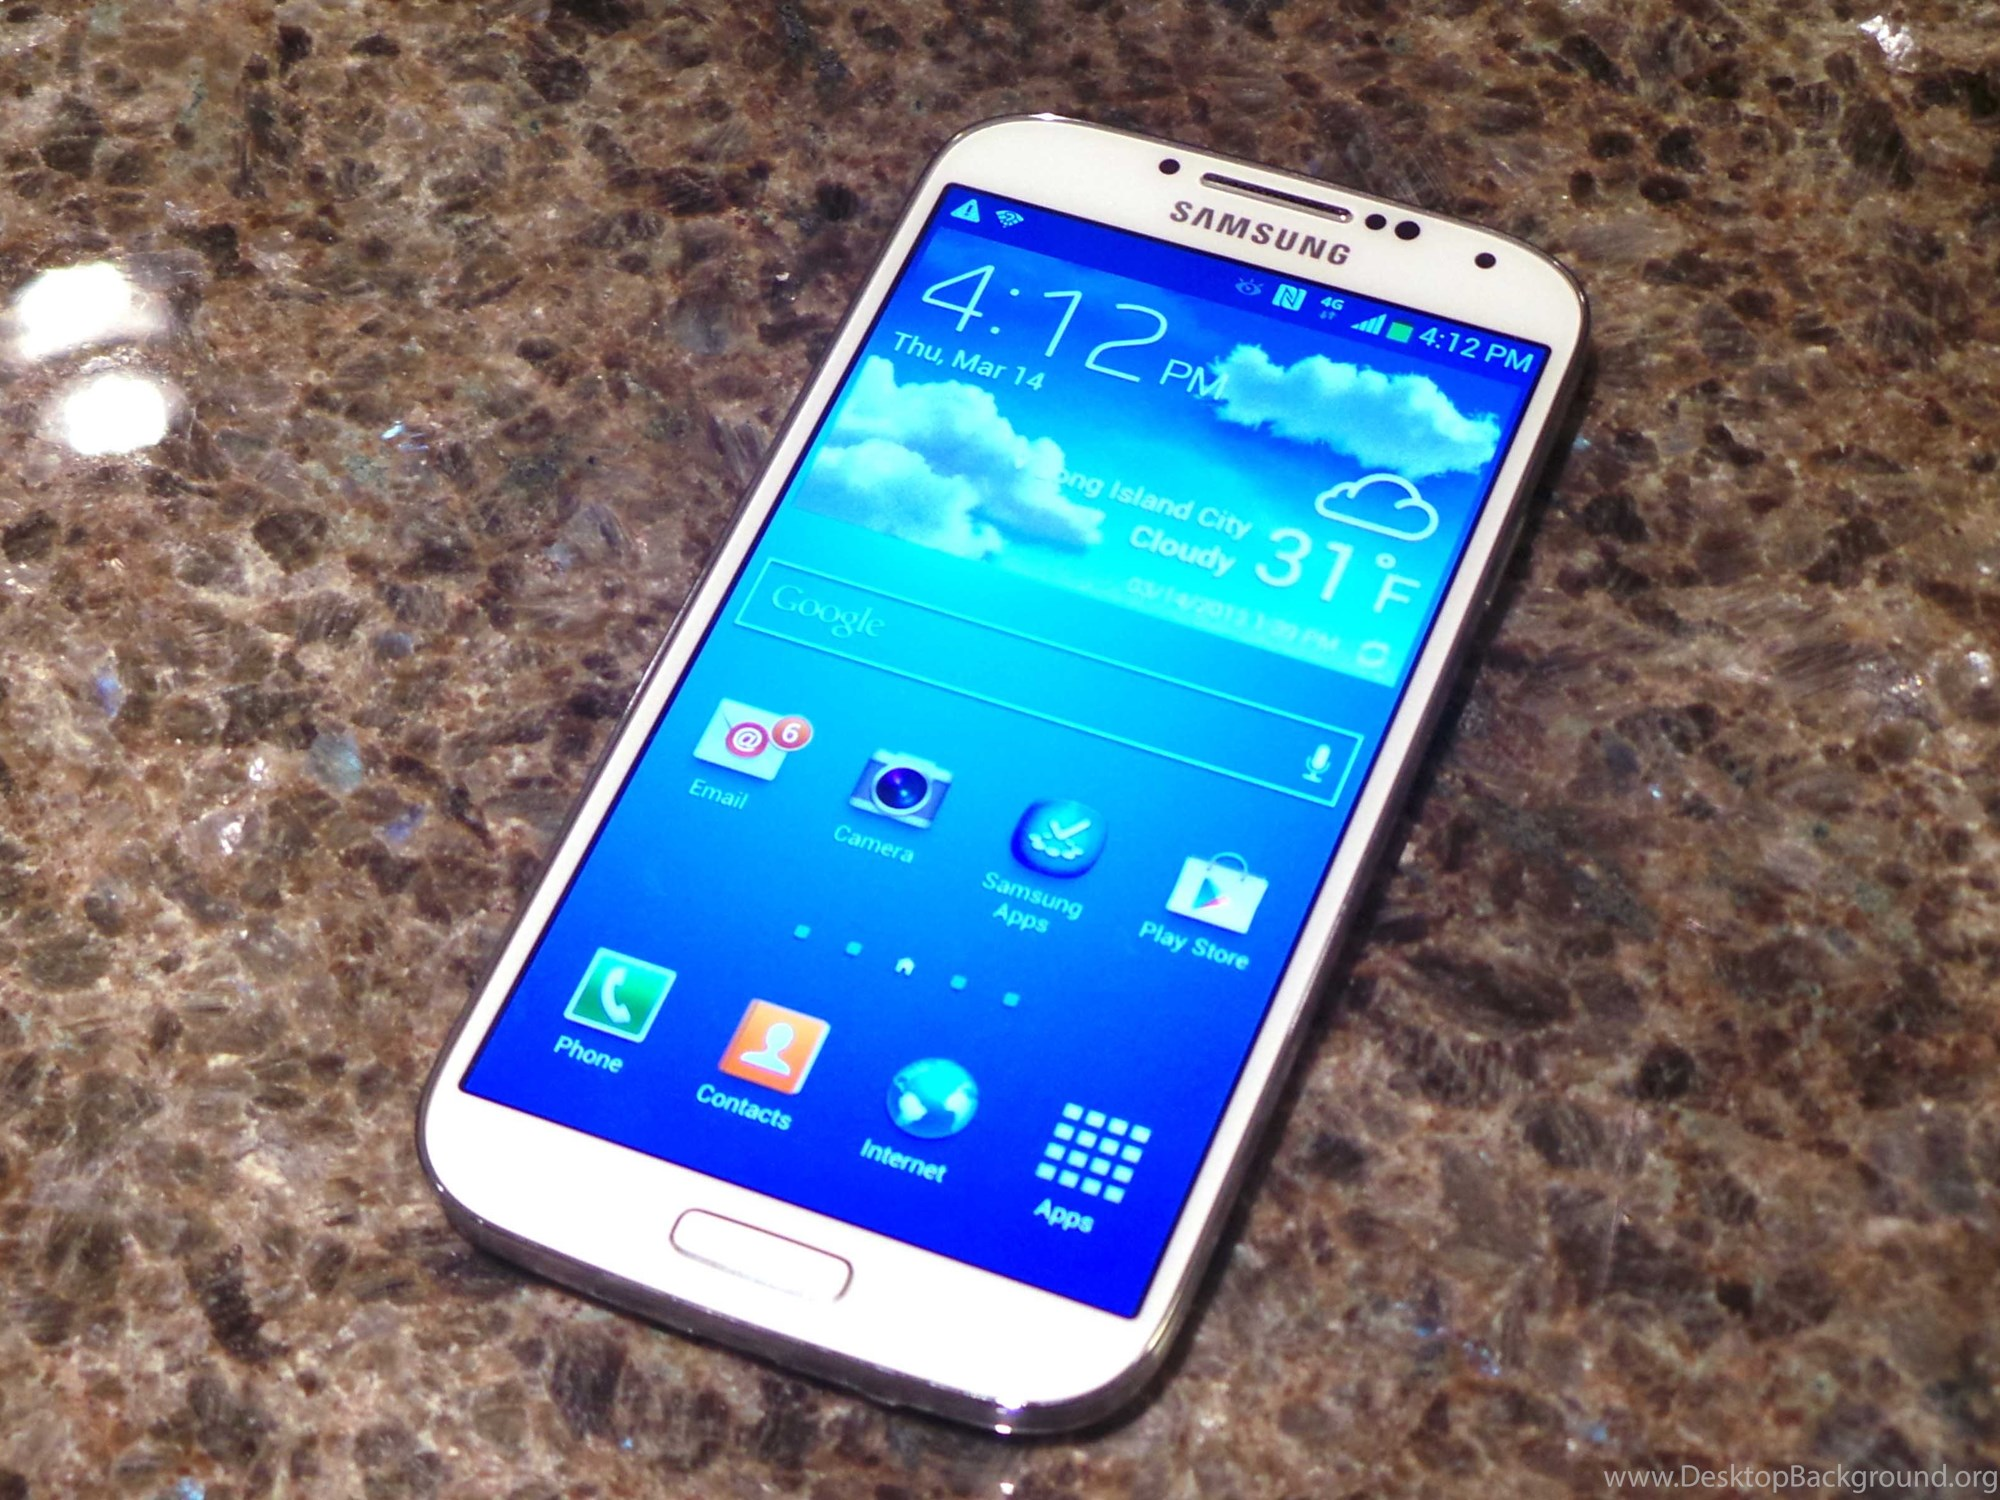 Samsung Galaxy S4 Wallpapers Free Download Elegance Collections